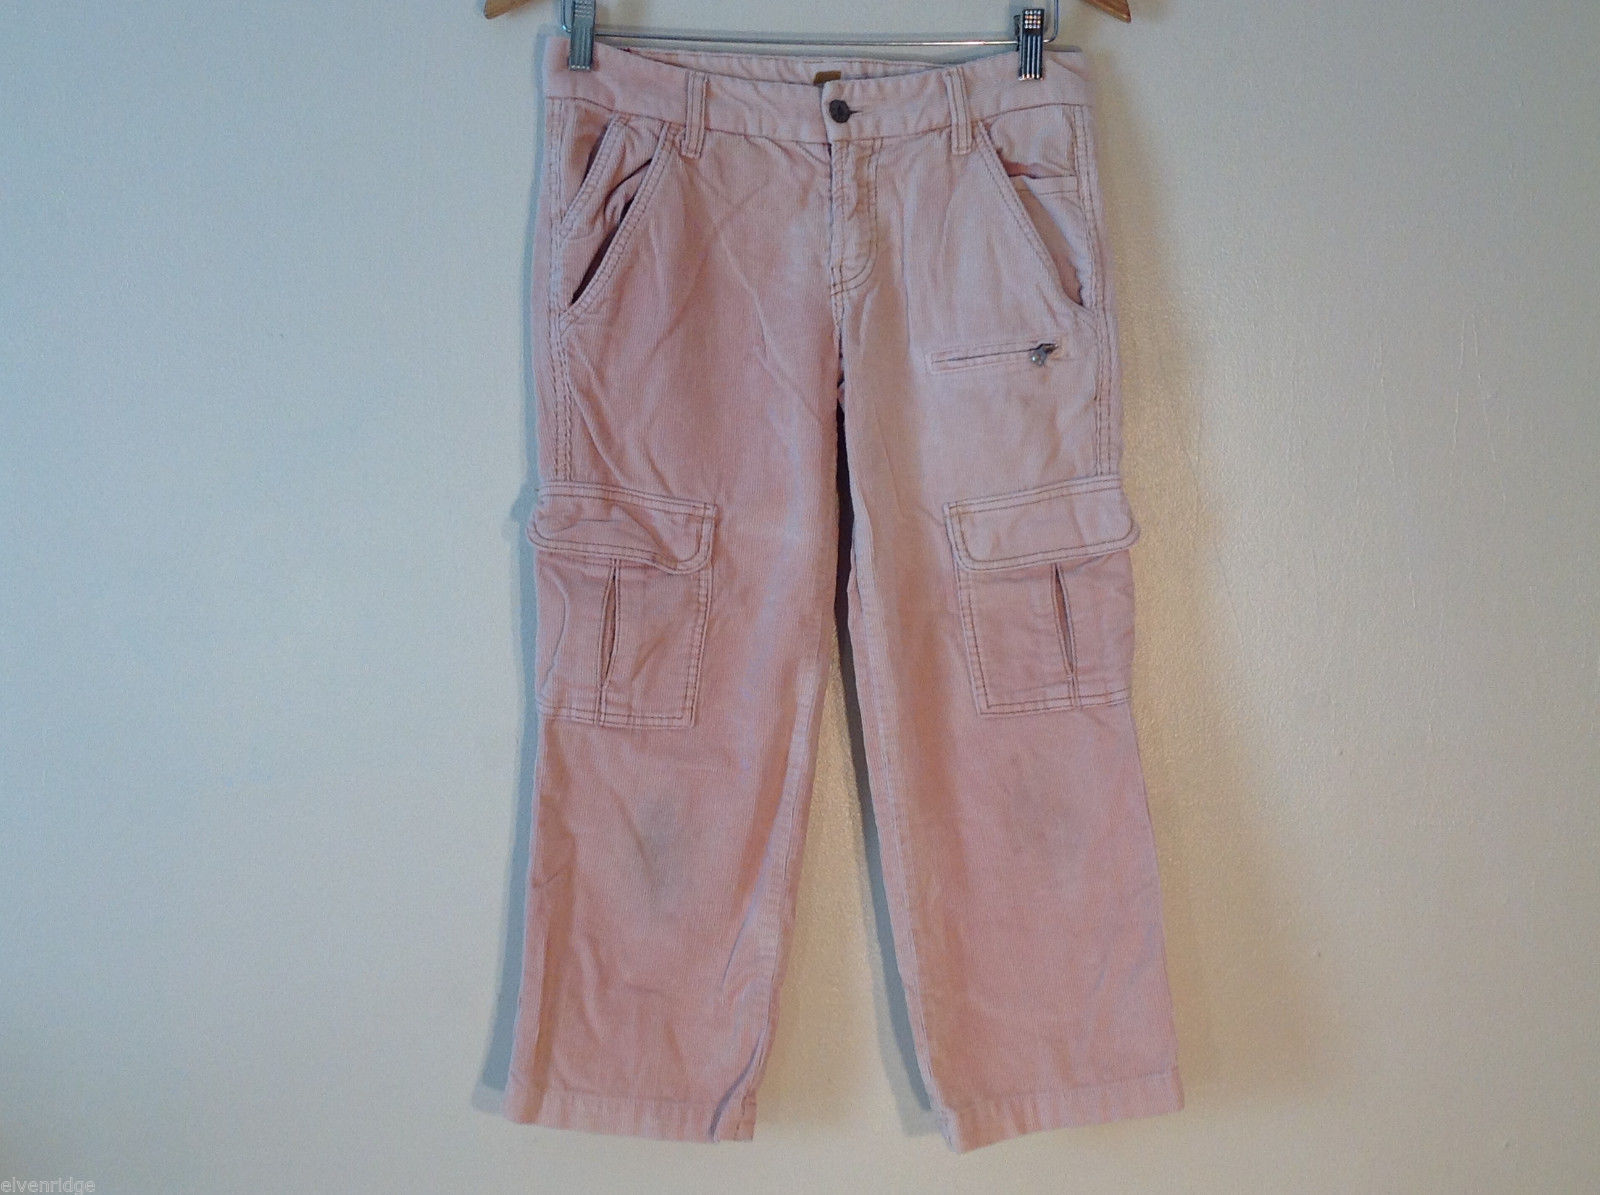 Womens For All Mankind Corduroy Pink Peach Pants Size 27 100% cotton